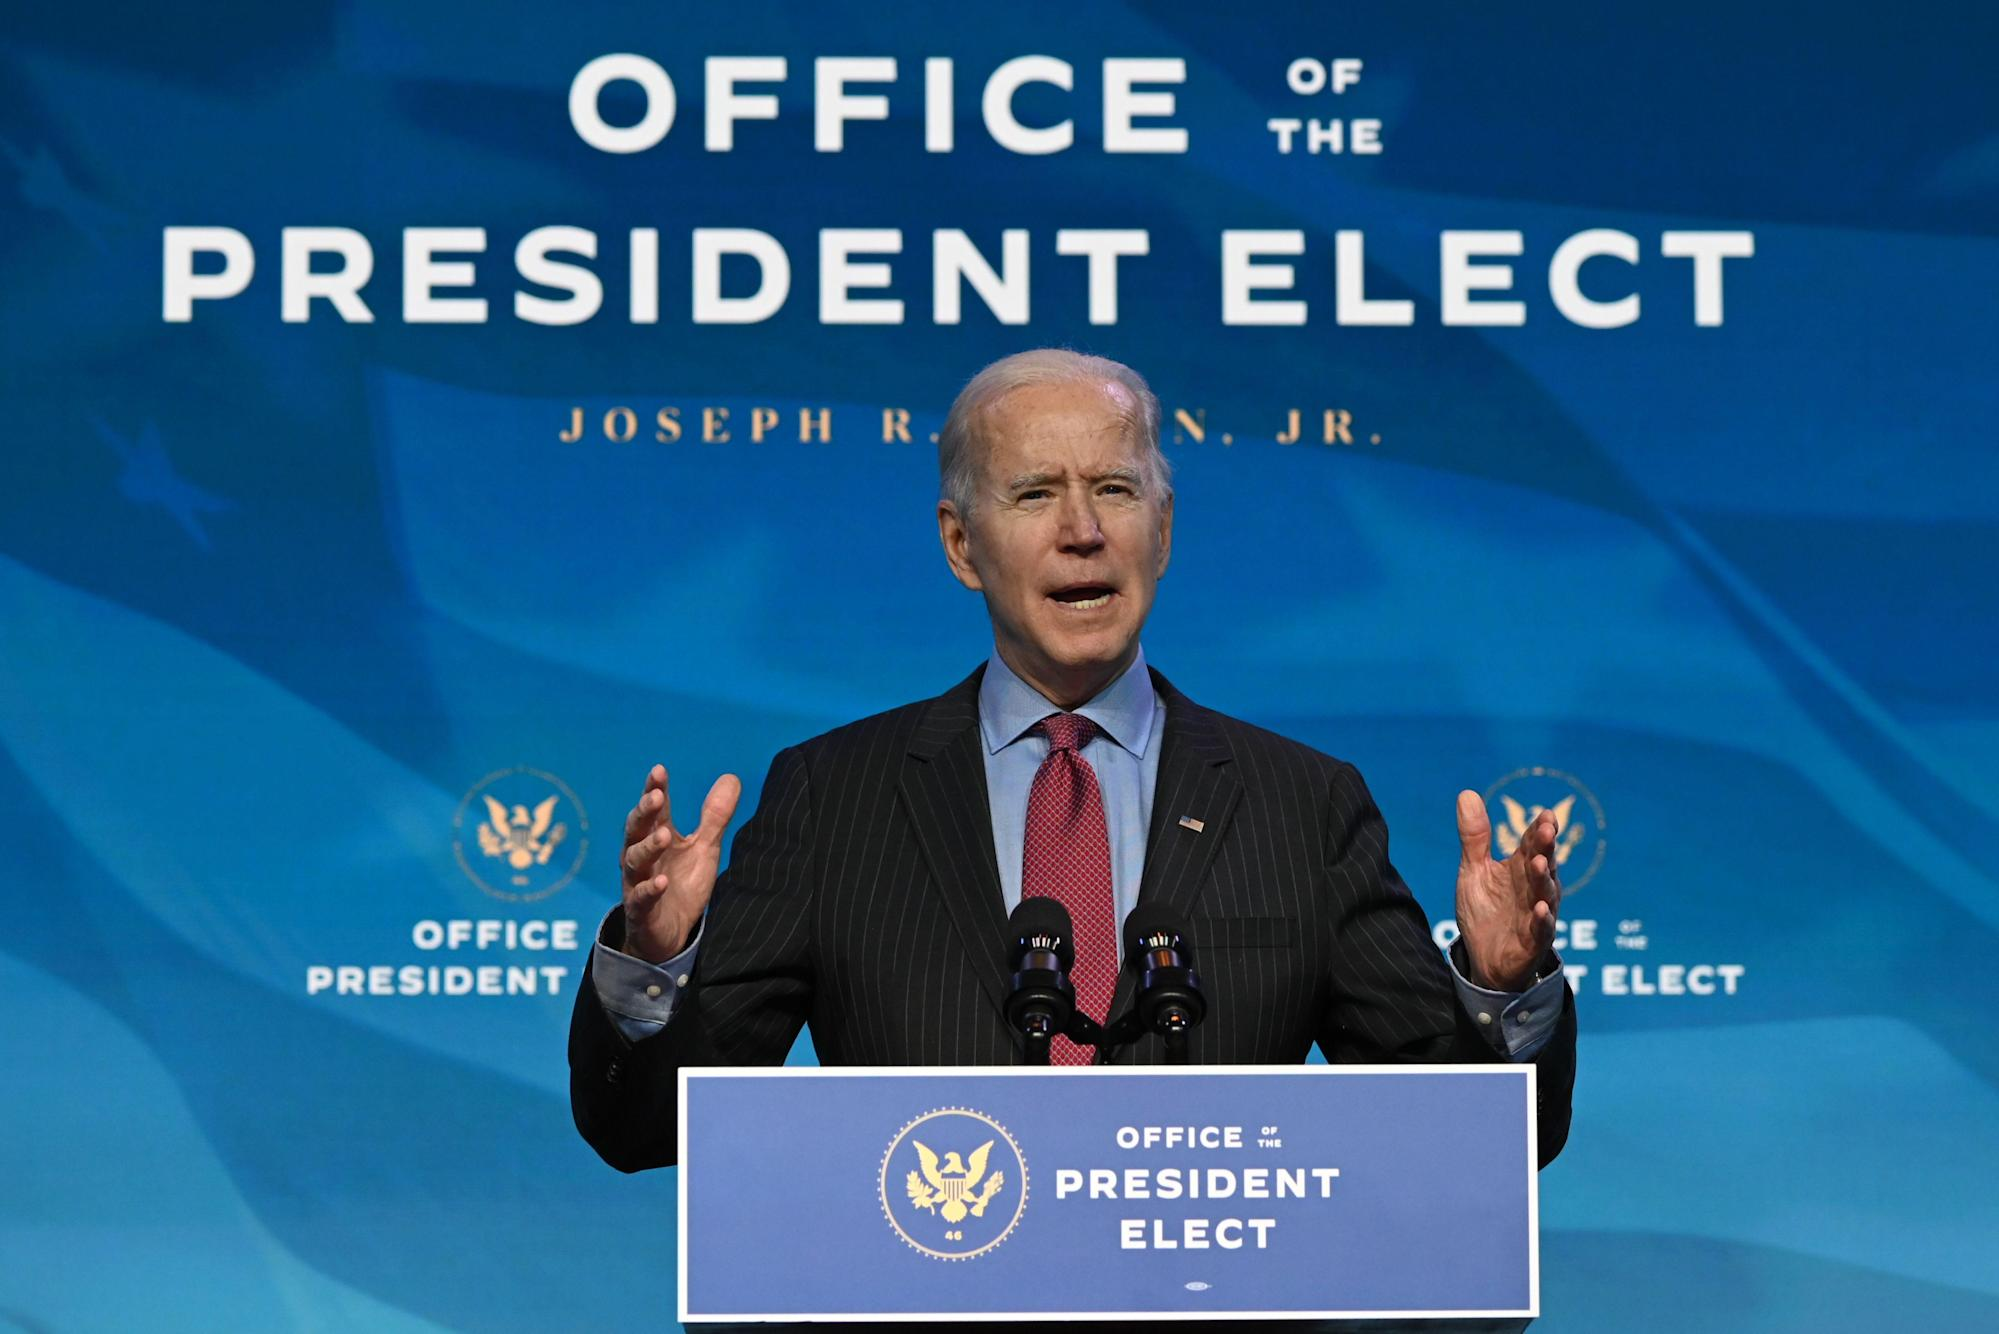 news.yahoo.com: Fact check: Biden said he plans to increase COVID-19 small business relief to people of color and women